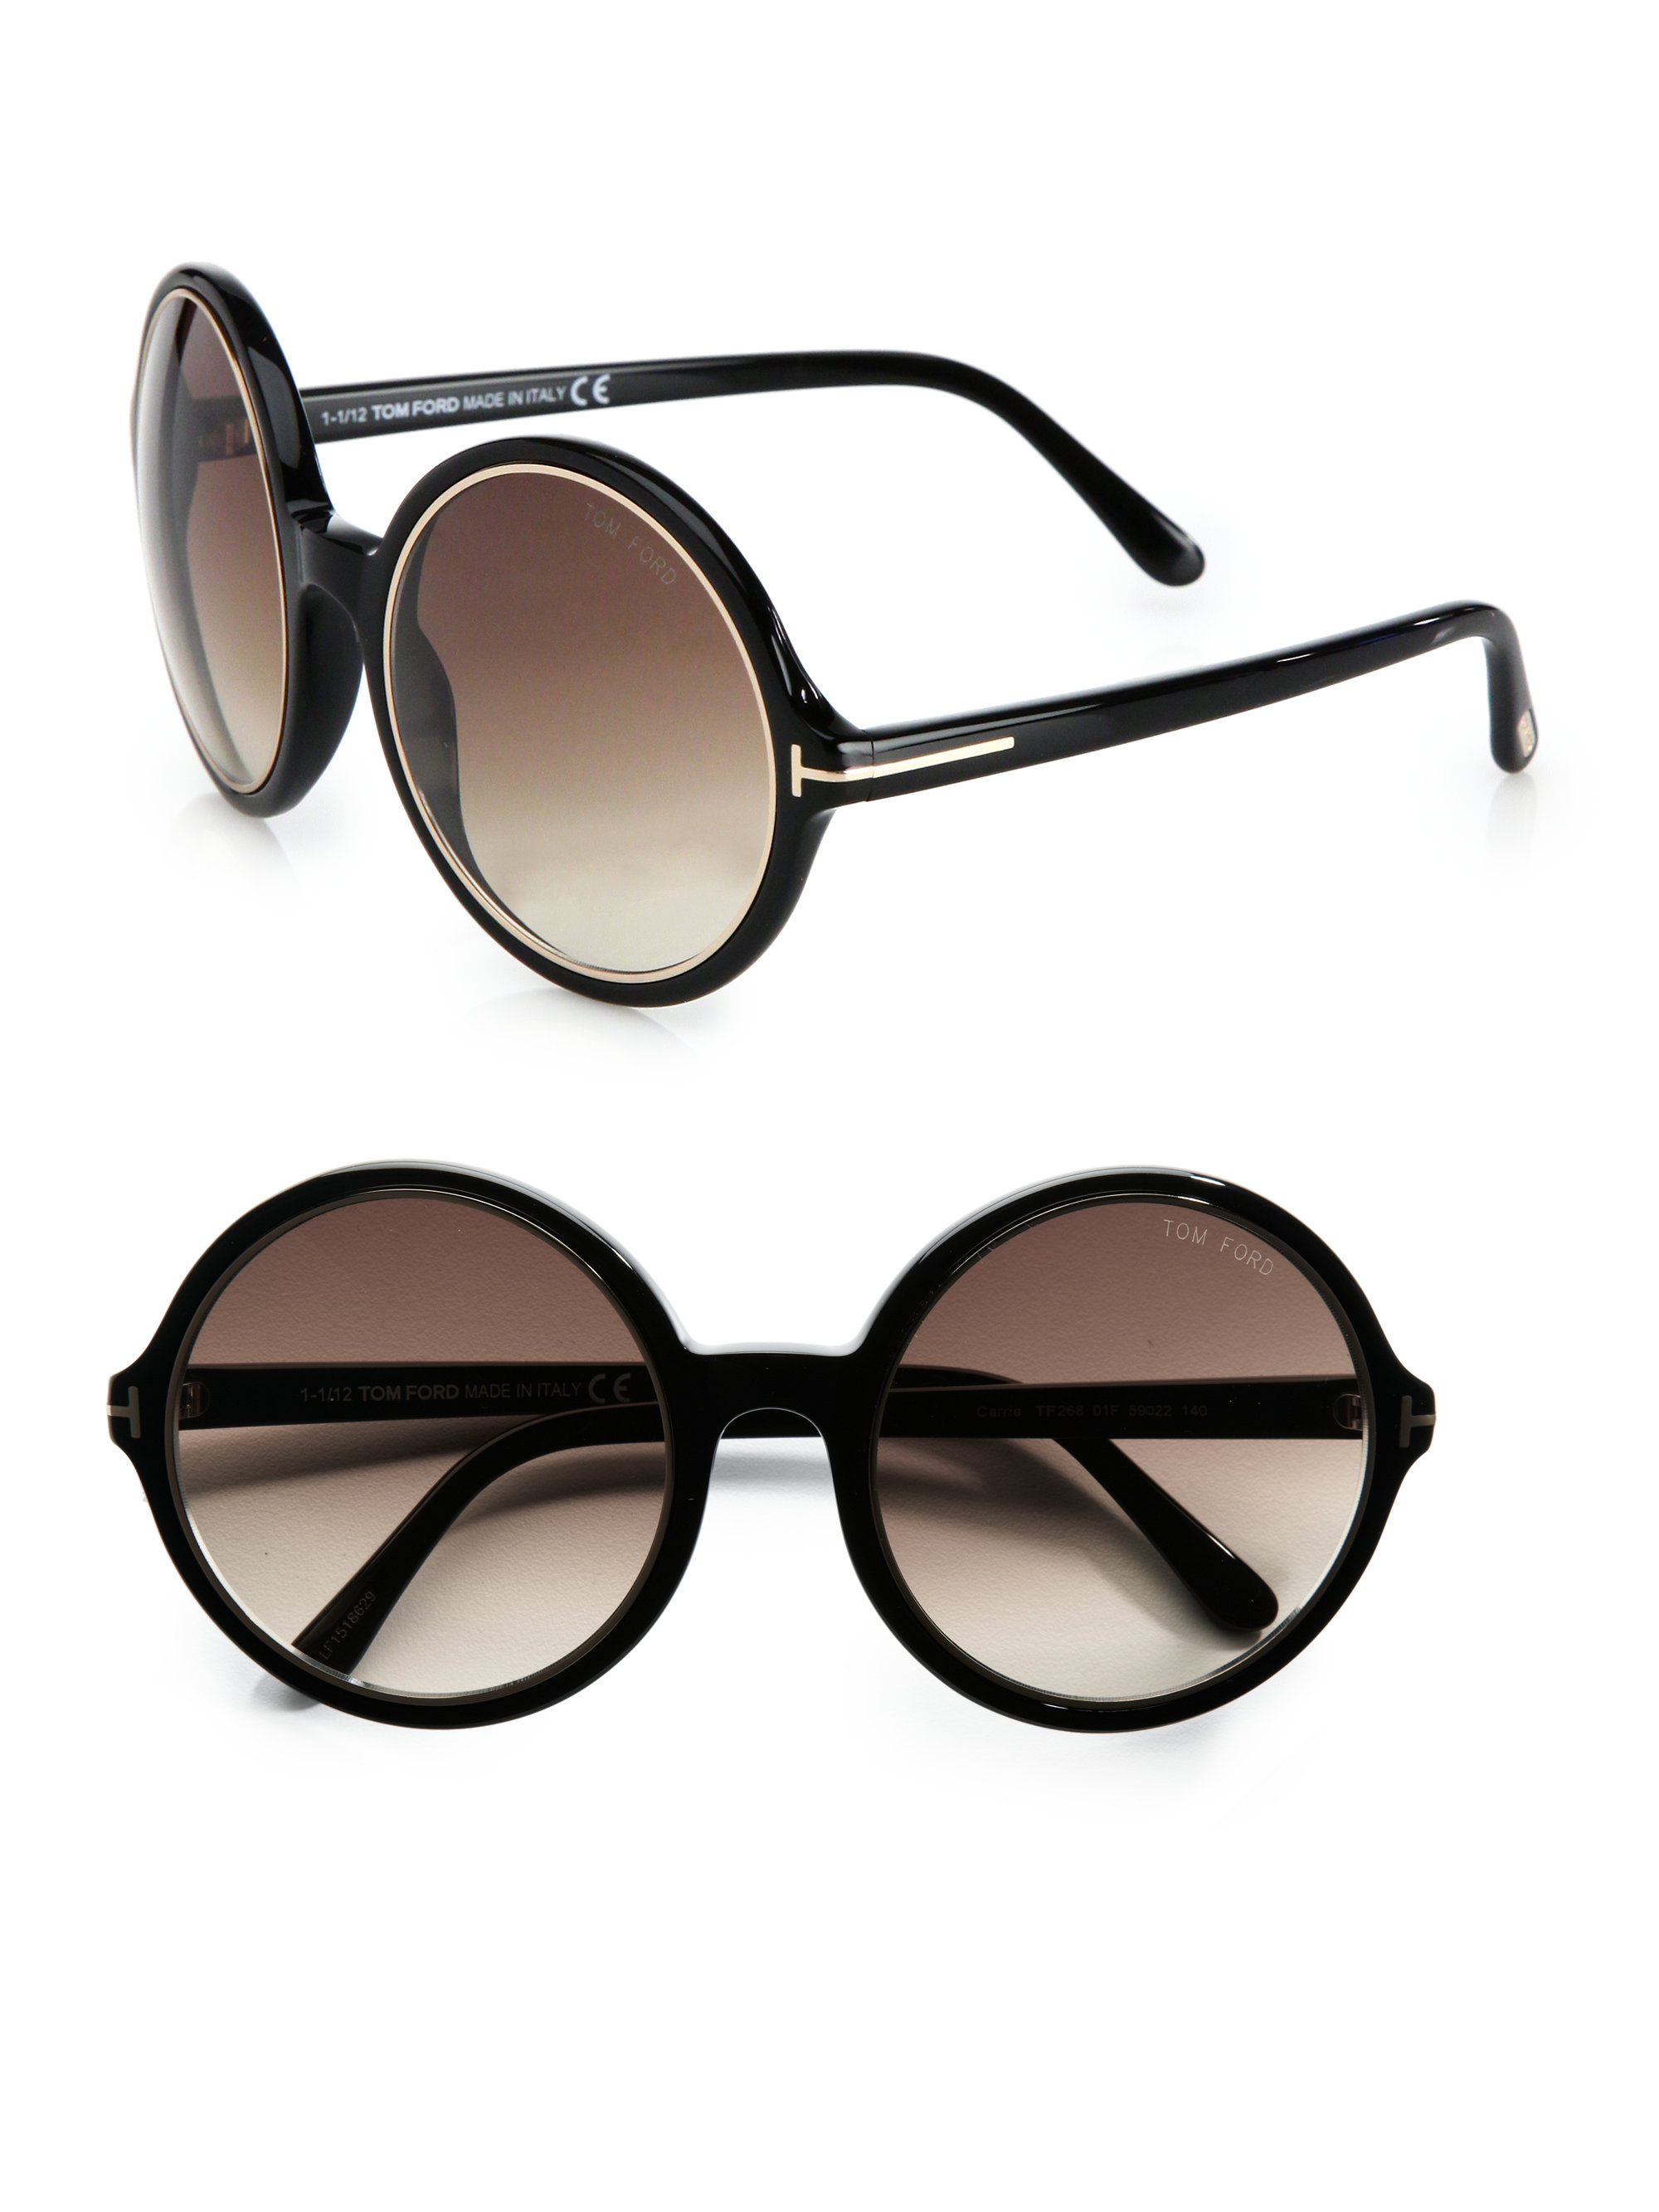 bae8e69fe116b Tom Ford Carrie Round Plastic Sunglasses in Black - Lyst